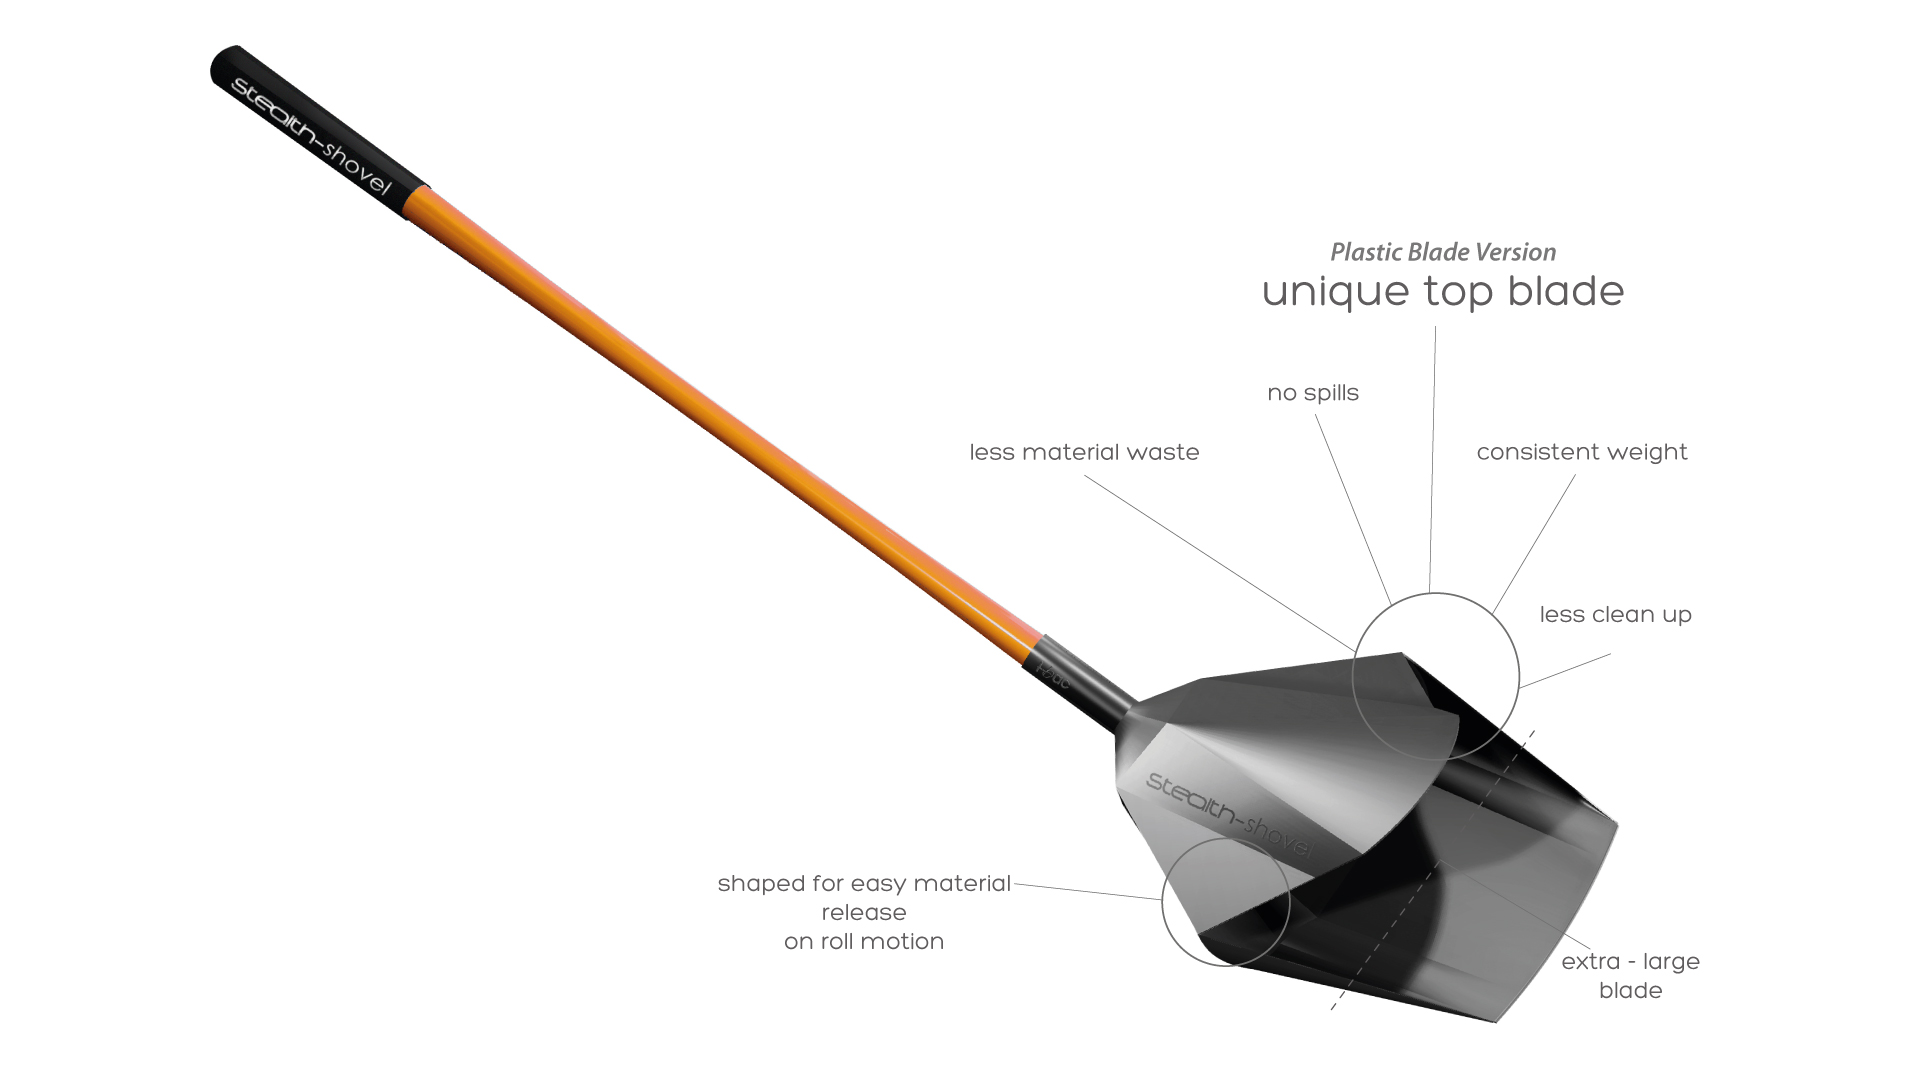 stealth shovel details unique top blade